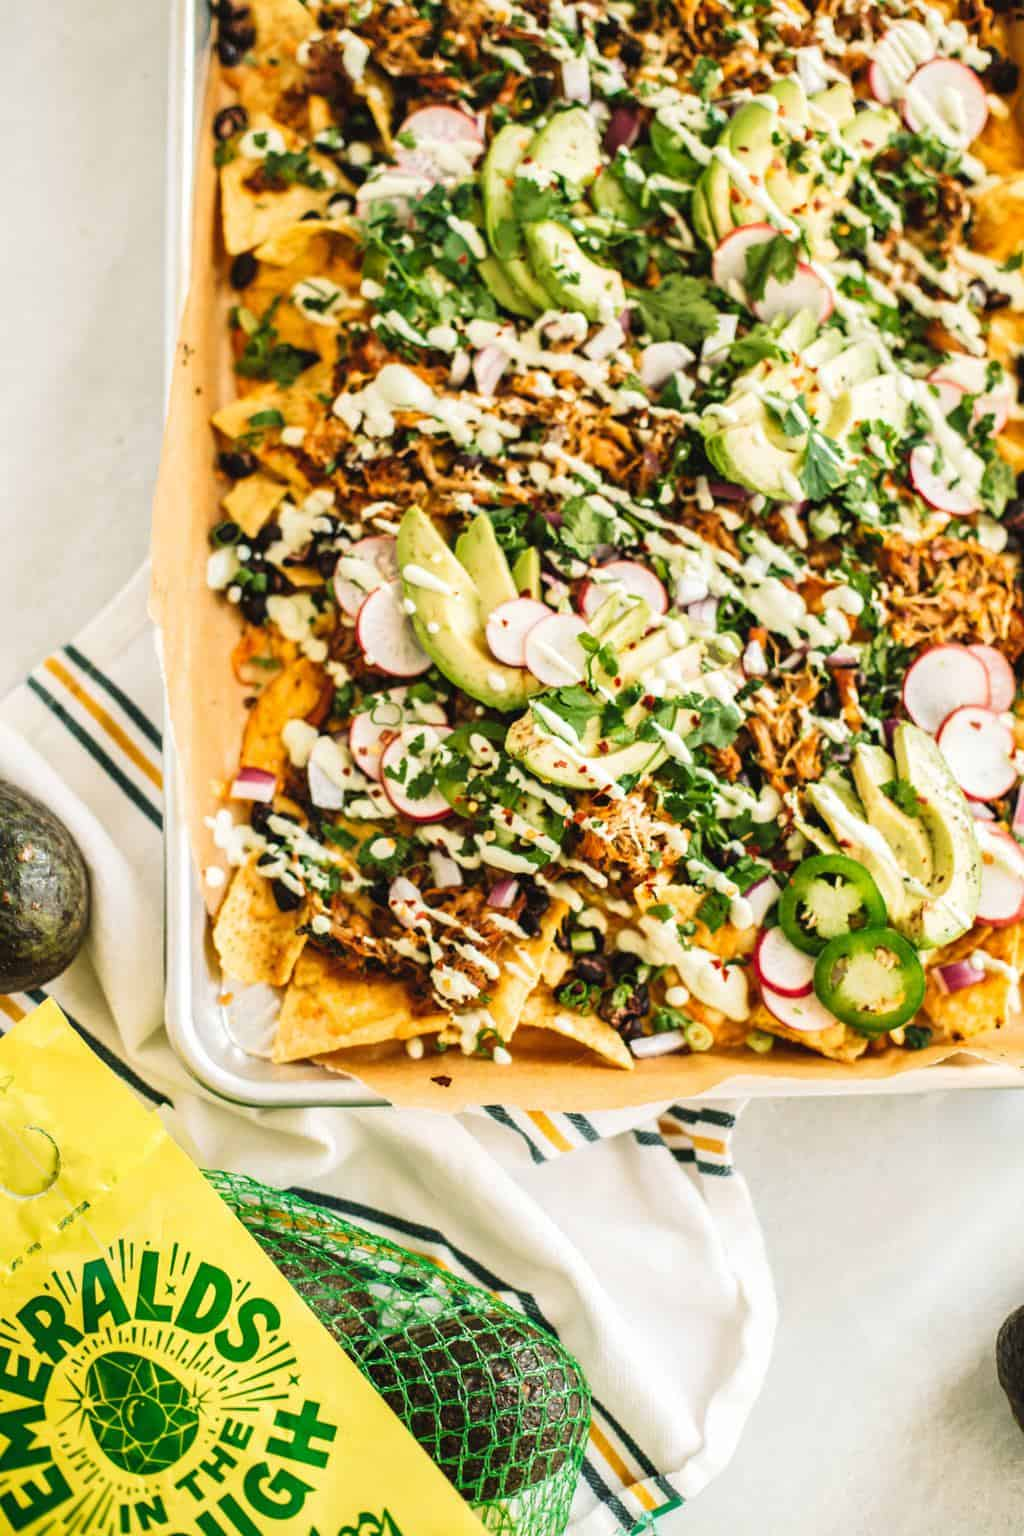 Insanely flavorful and juicy Jacuzzi chicken nachos. These nachos are topped with shredded chipotle Jacuzzi chicken and avocado crema + all the toppings!